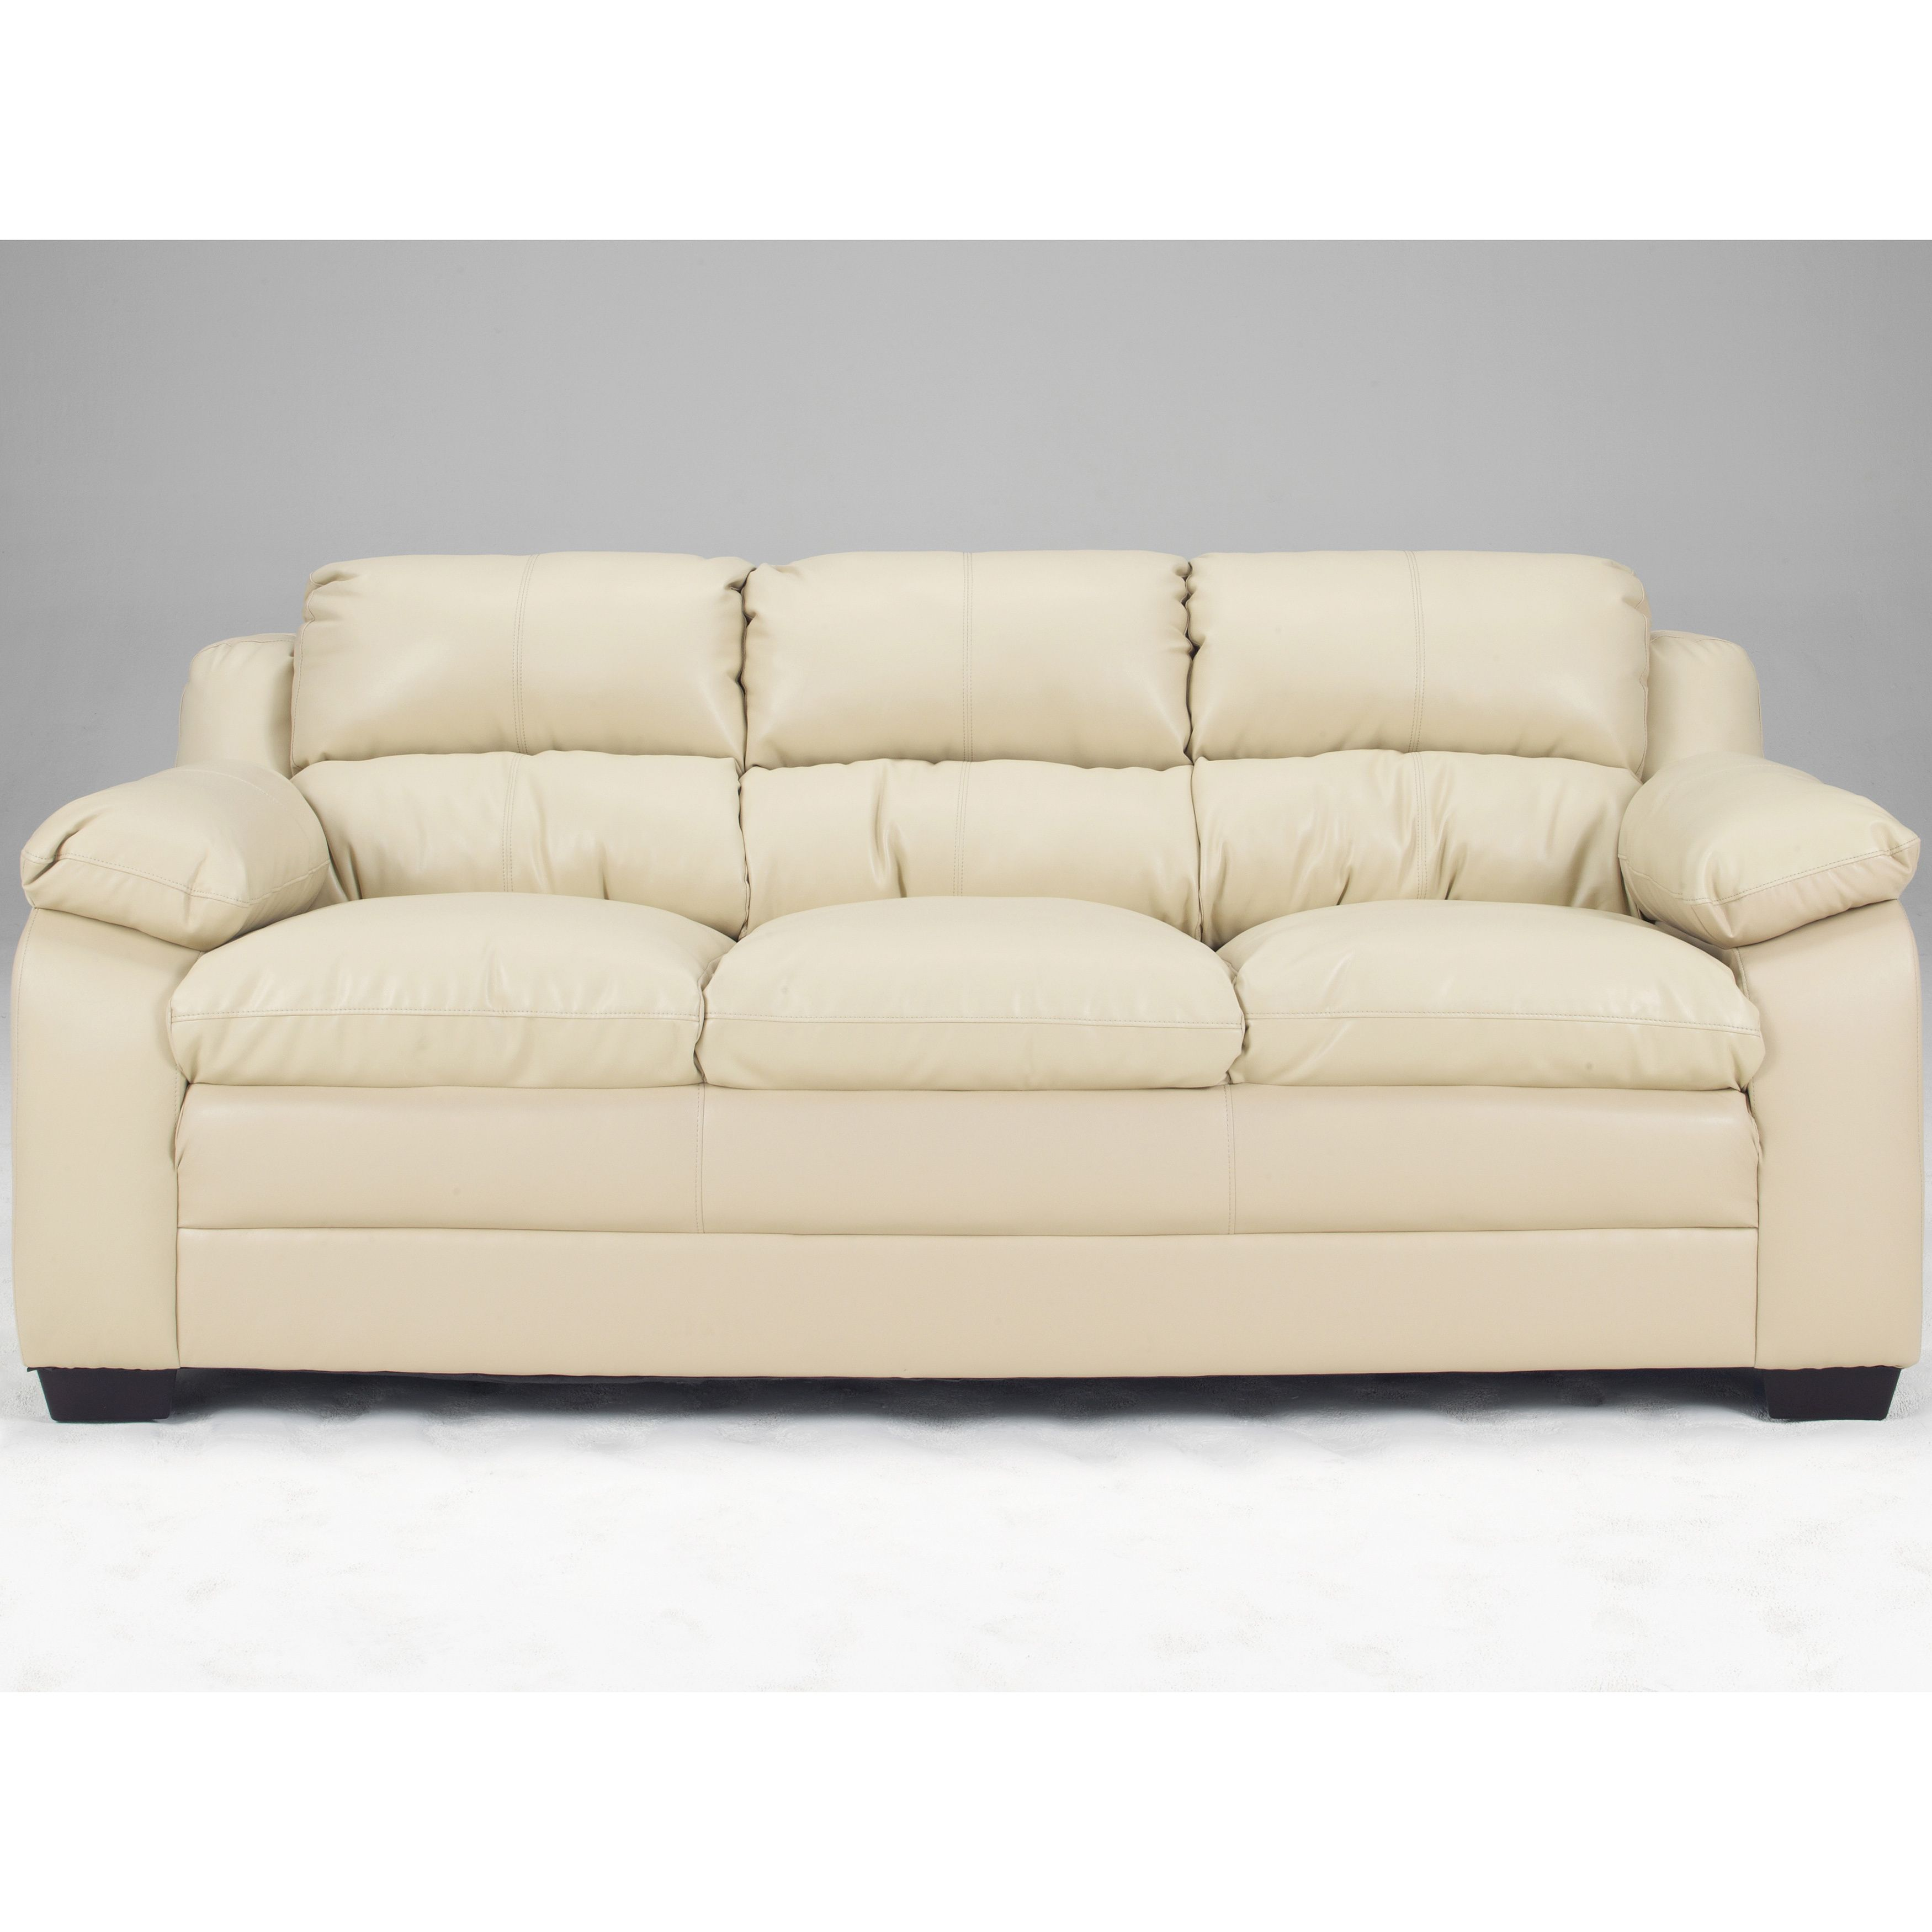 Best The Maddox Sofa Available In Espresso Natural Onyx 400 x 300